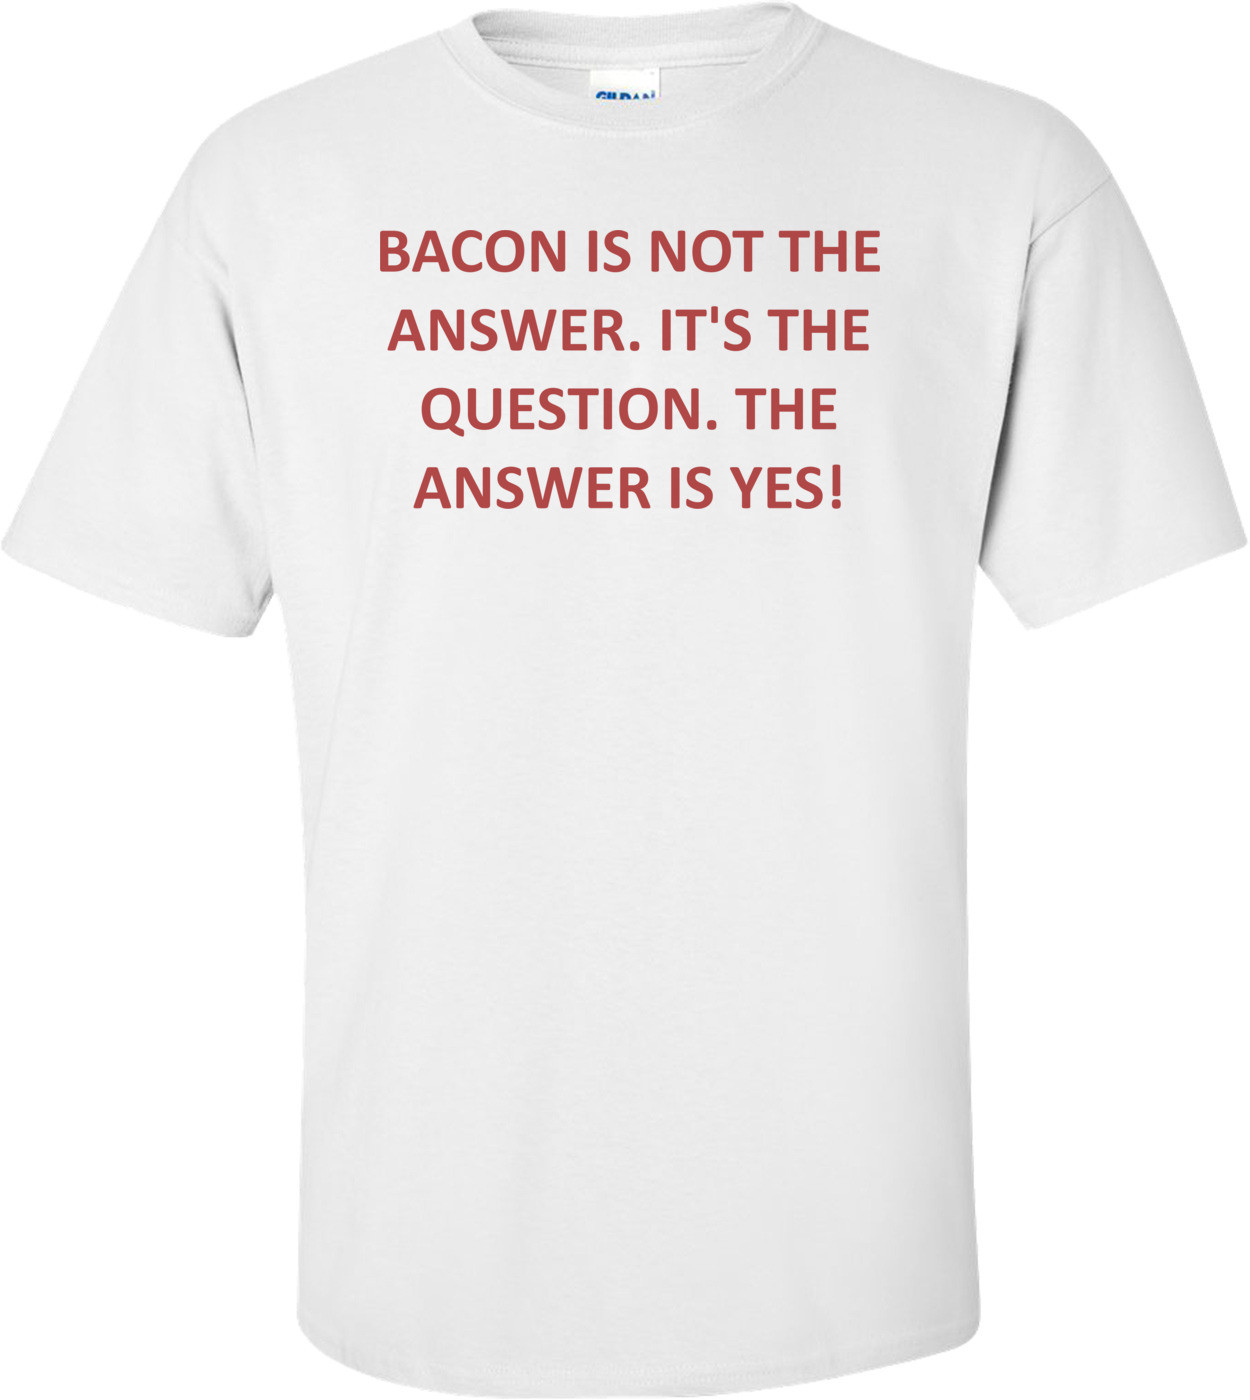 BACON IS NOT THE ANSWER. IT'S THE QUESTION. THE ANSWER IS YES! Shirt